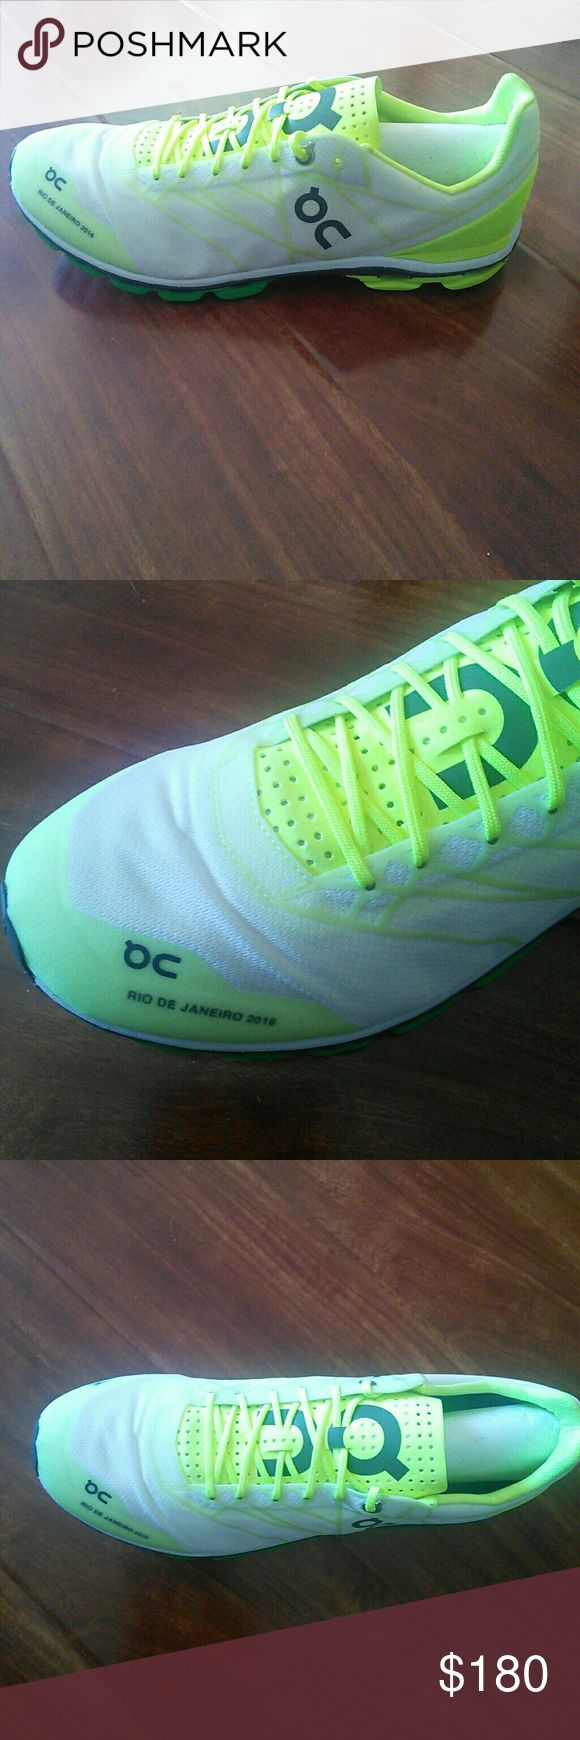 LIMITED EDITION ON CLOUD SNEAKERS 2016 RIO DE JANEIRO one of a kind, specially made for this year's Olympic sneakers. Mens and brand new in box. Never used. So light weight and beautiful colors of Brazil. European sneakers. on cloud Shoes Sneakers